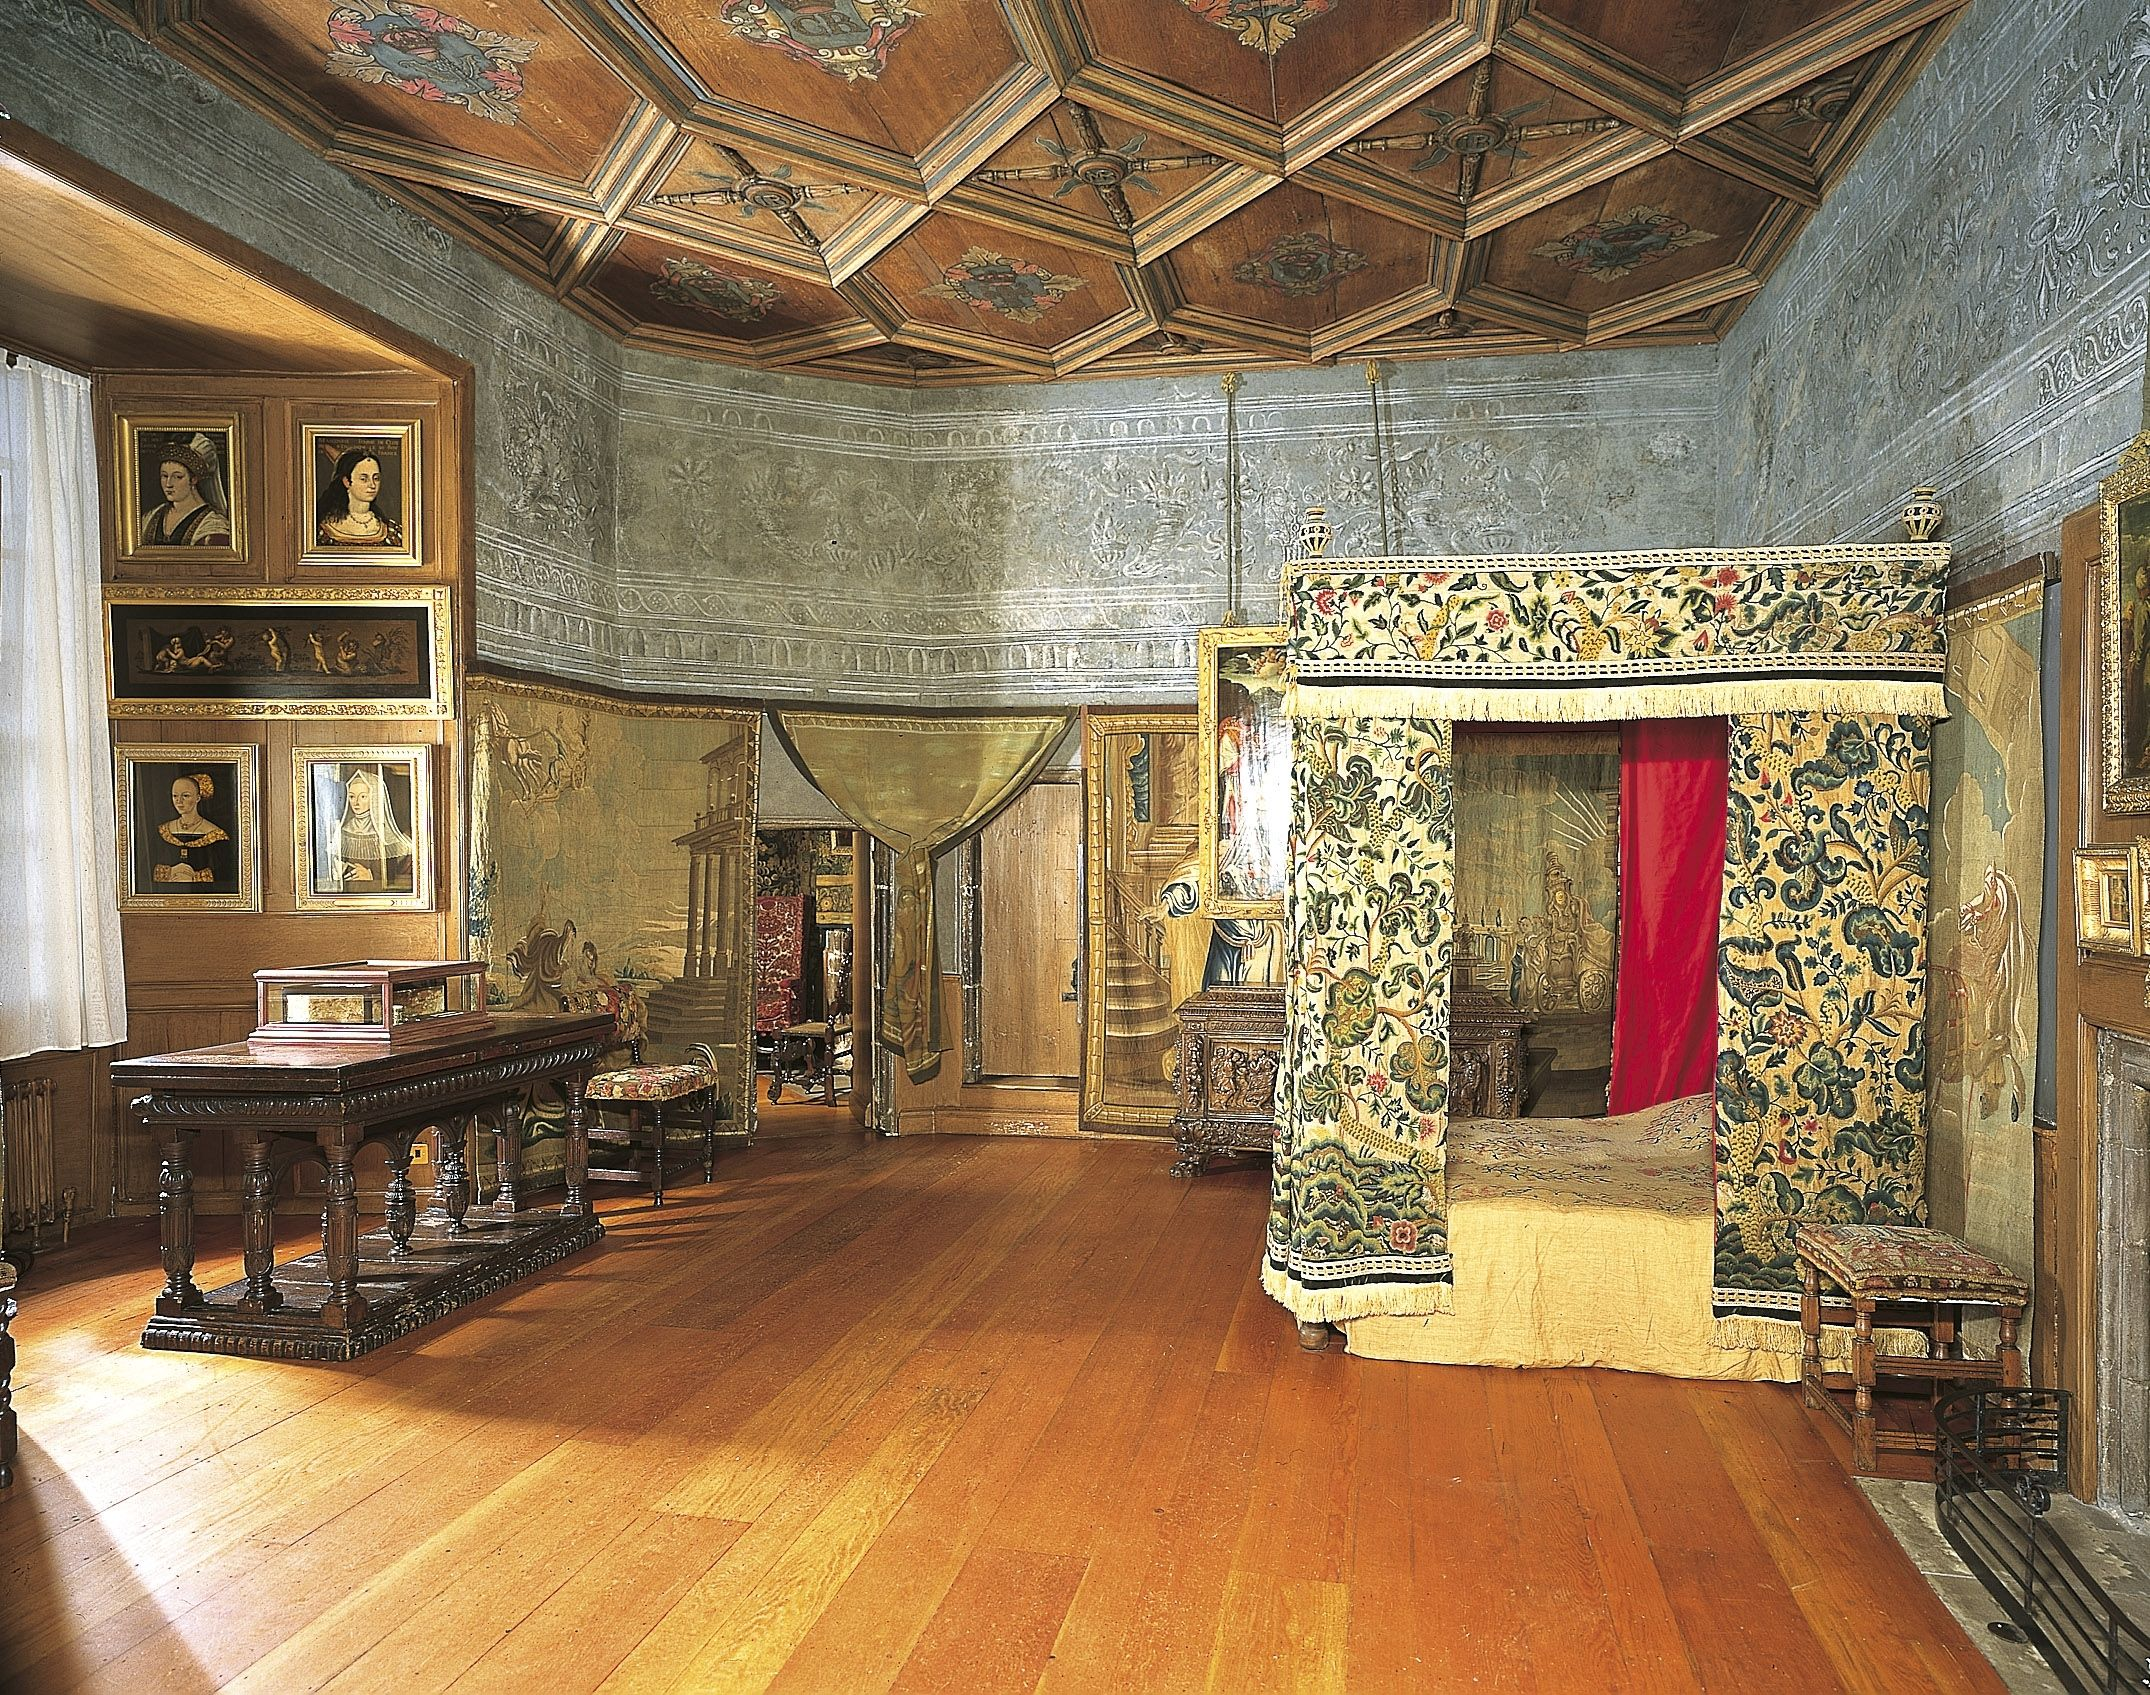 Queen Mary's bedchamber in the Palace of Holyroodhouse, Edinburgh: in 1566 David Rizzio was dragged from here and murdered. (Mary, Queen of Scots 2014)